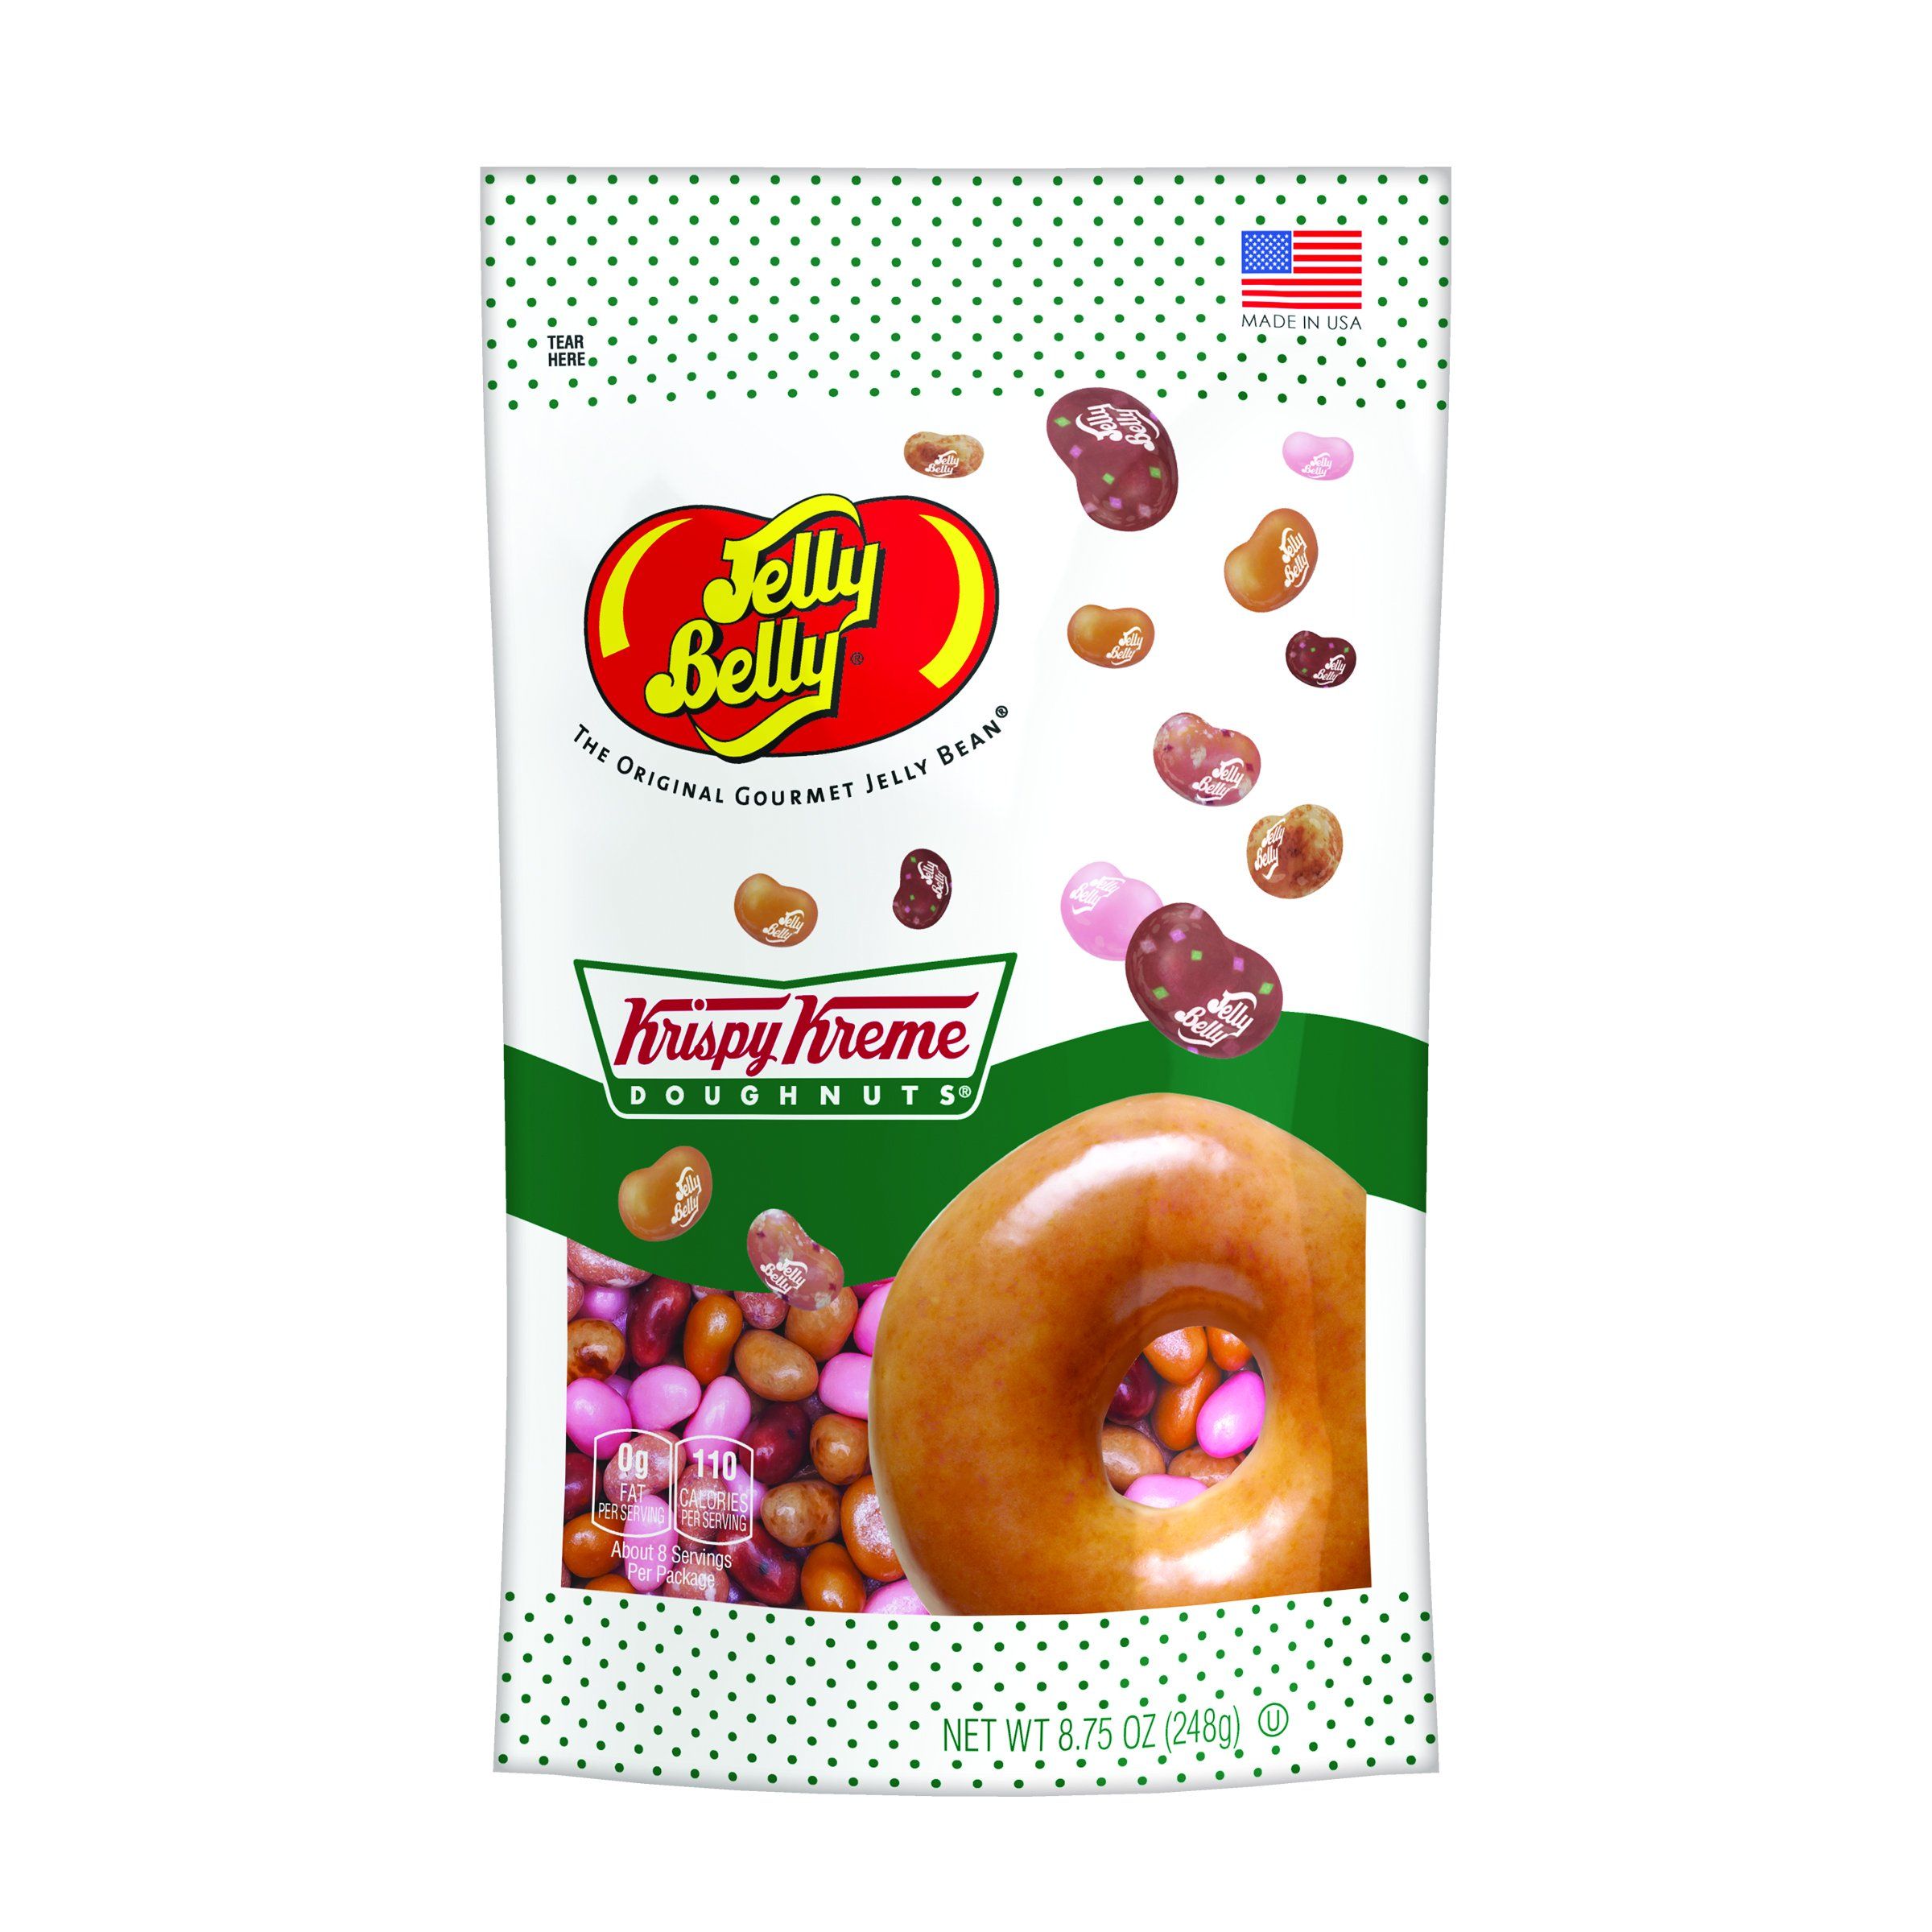 Jelly Belly Krispy Kreme Doughnuts Jelly Beans, 5 Flavors, 8.75-oz by Jelly Belly